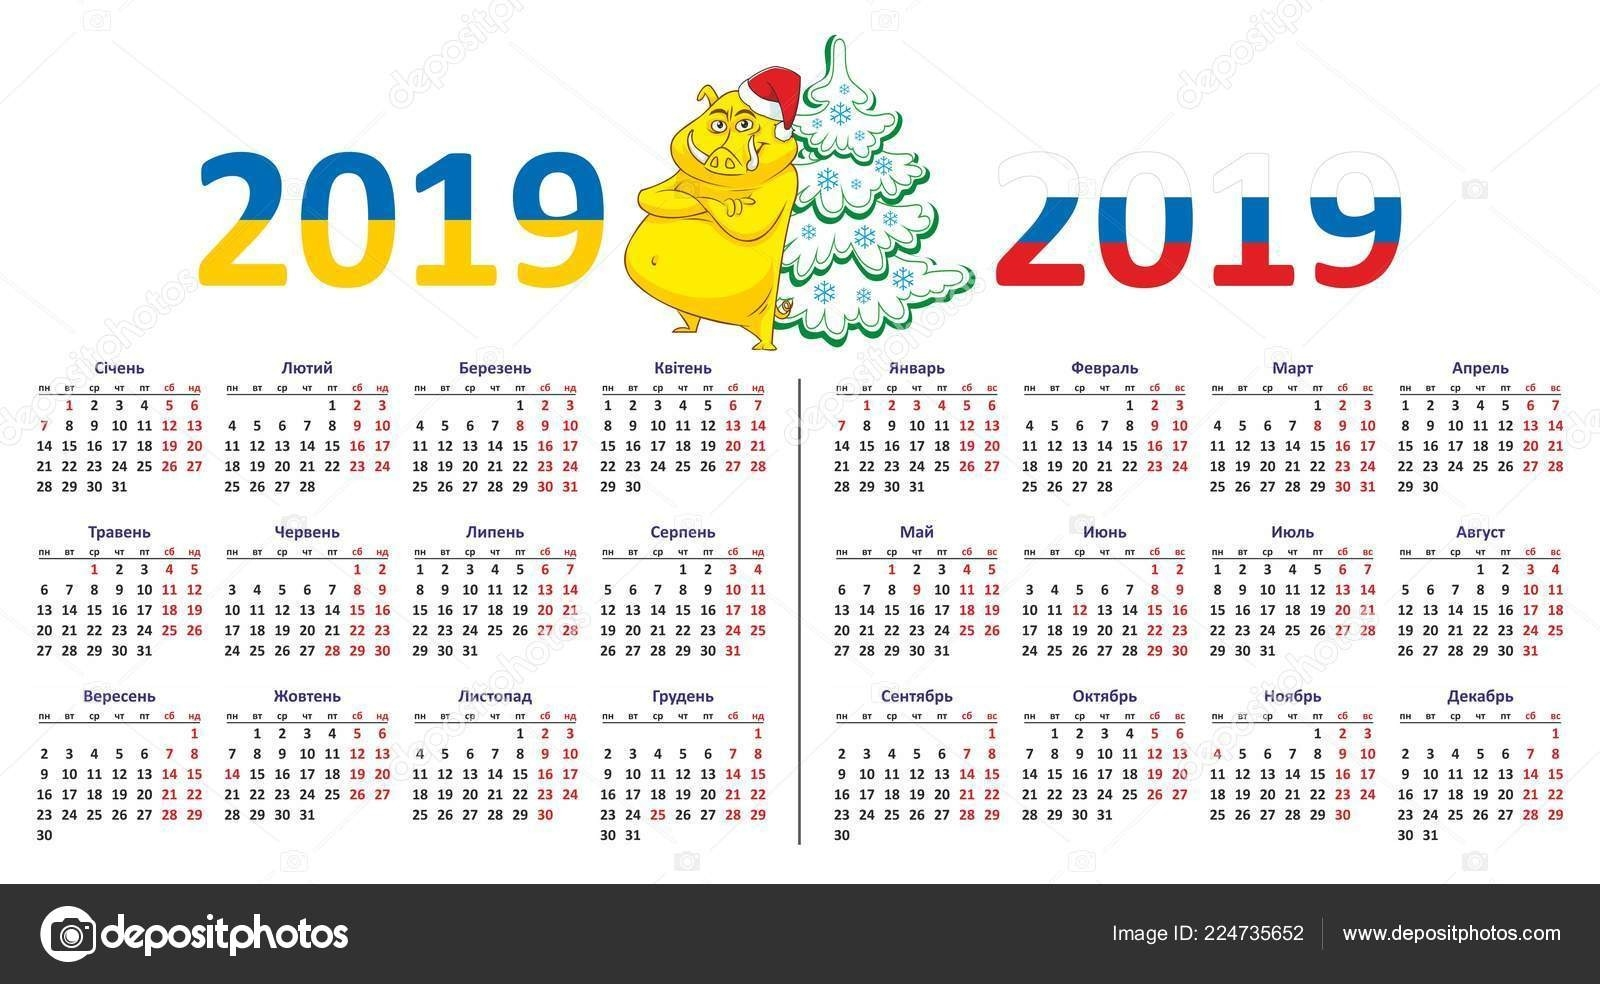 Calendar 2019 Russian Ukrainian Languages Indicating State-Calendar Indicating The Holidays